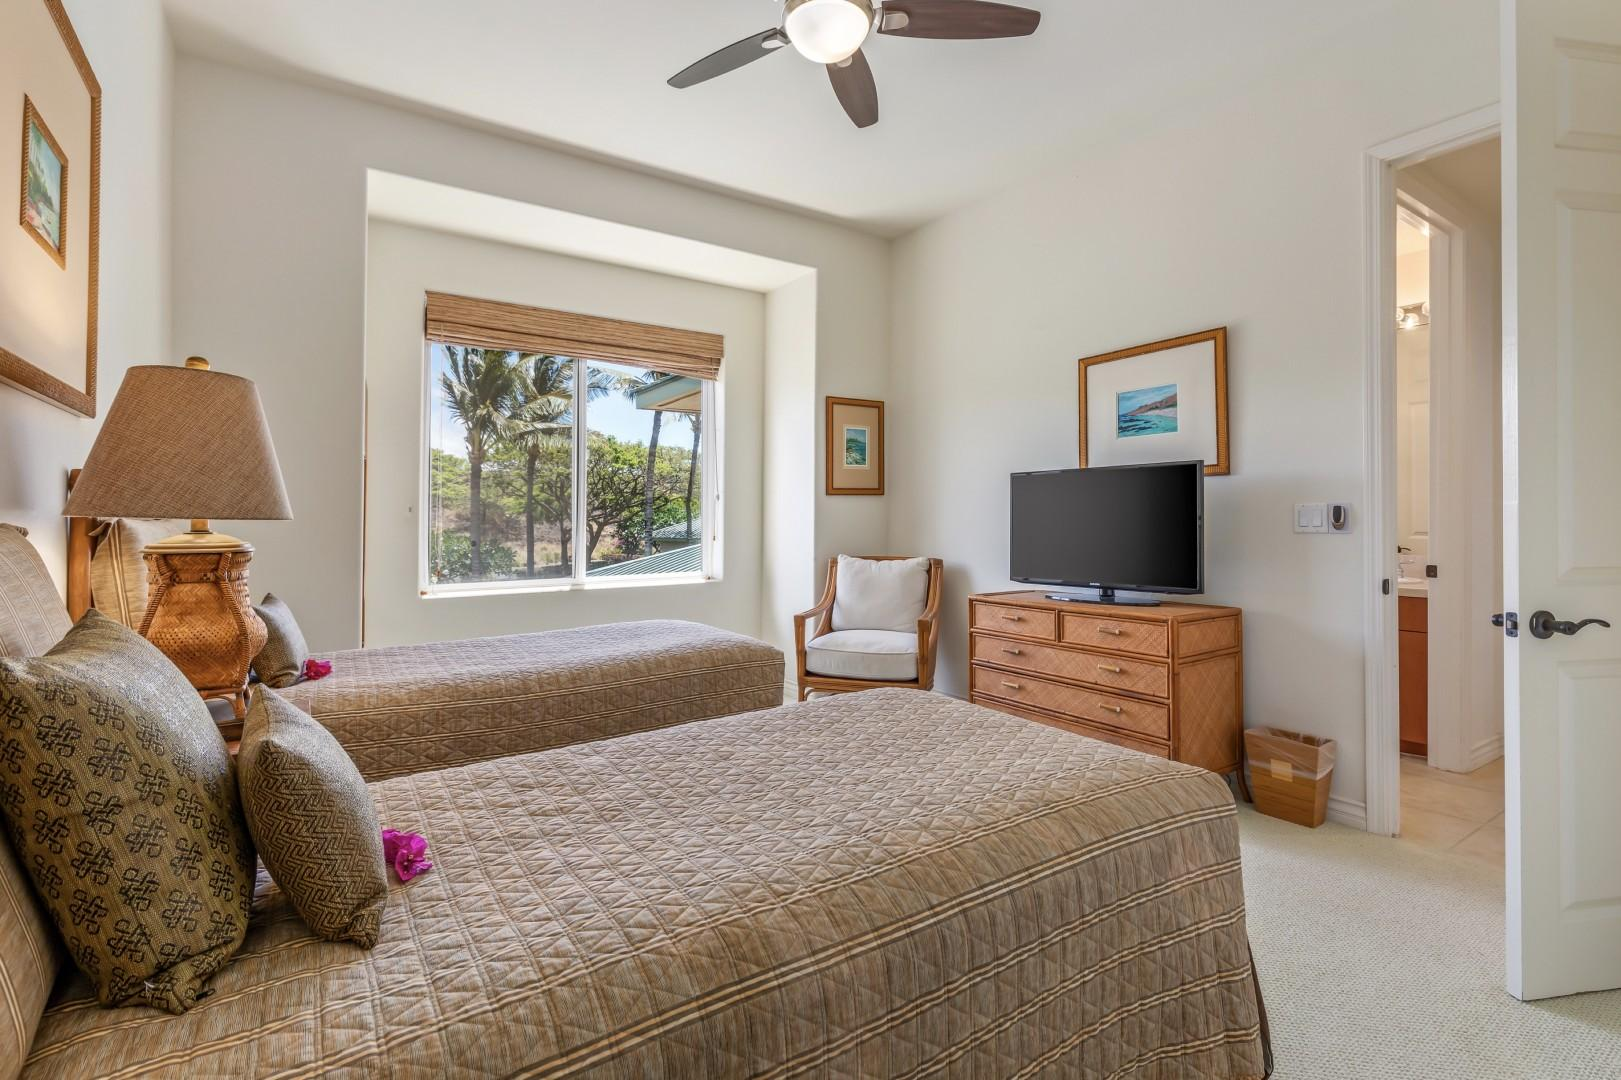 Guest bedroom with two twin beds (can convert to a king upon request) andmountain views.